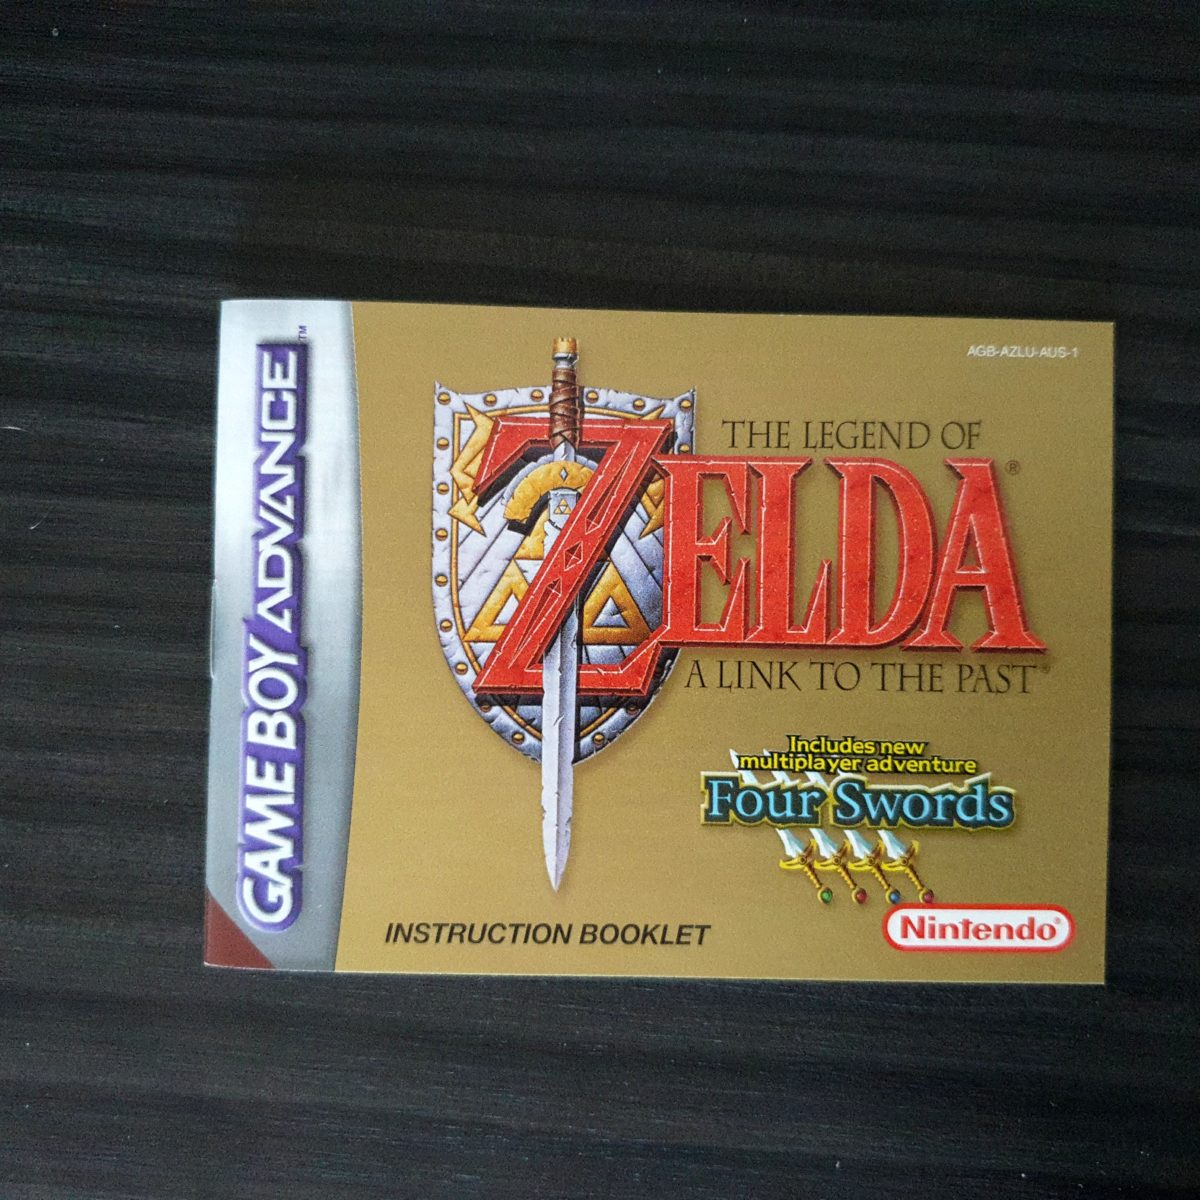 The Legend of Zelda A Link To The Past + Four Swords Australia GBA